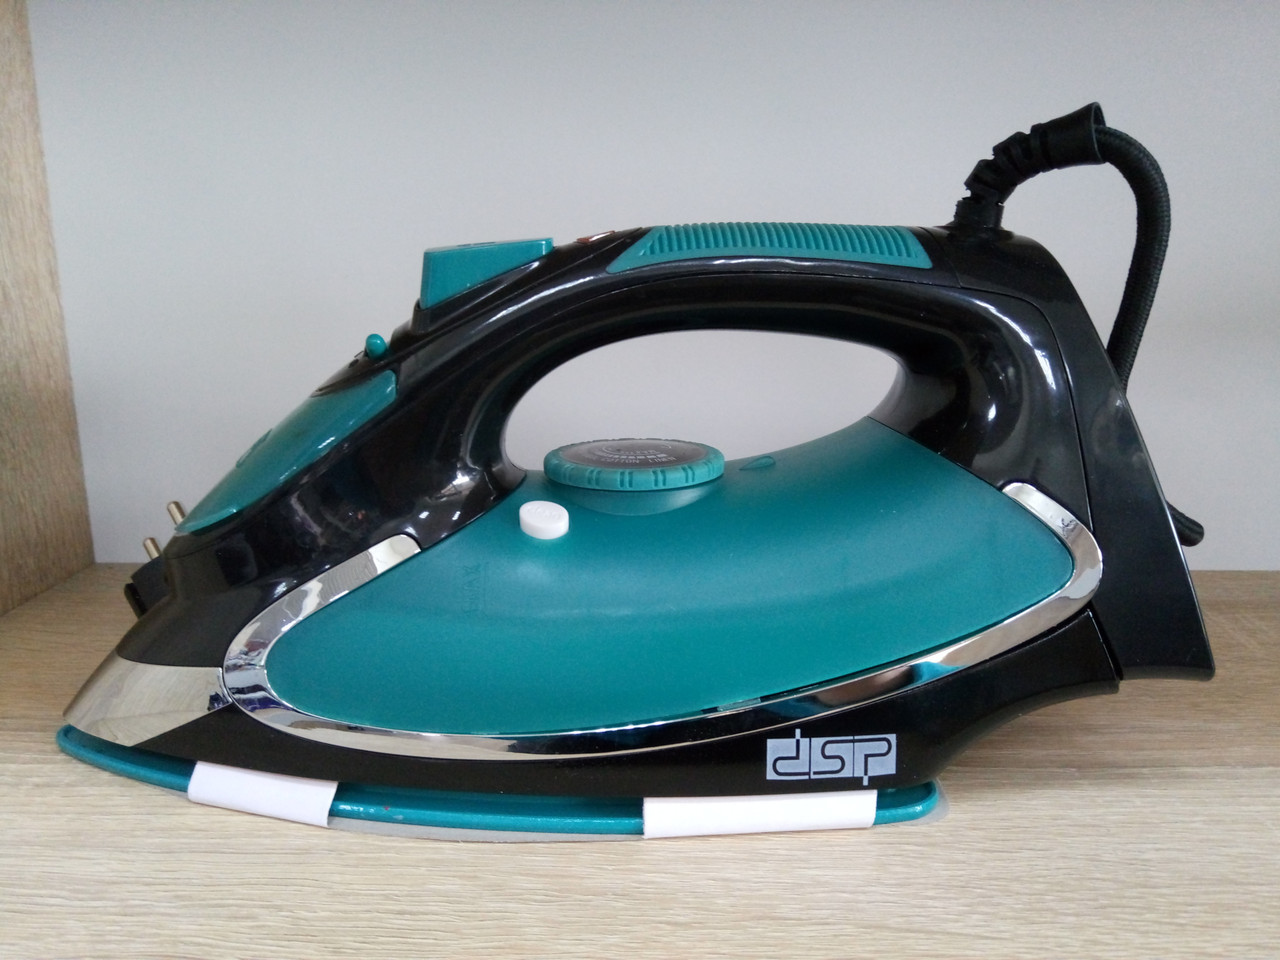 1308045967_utyug_steam_iron.jpg